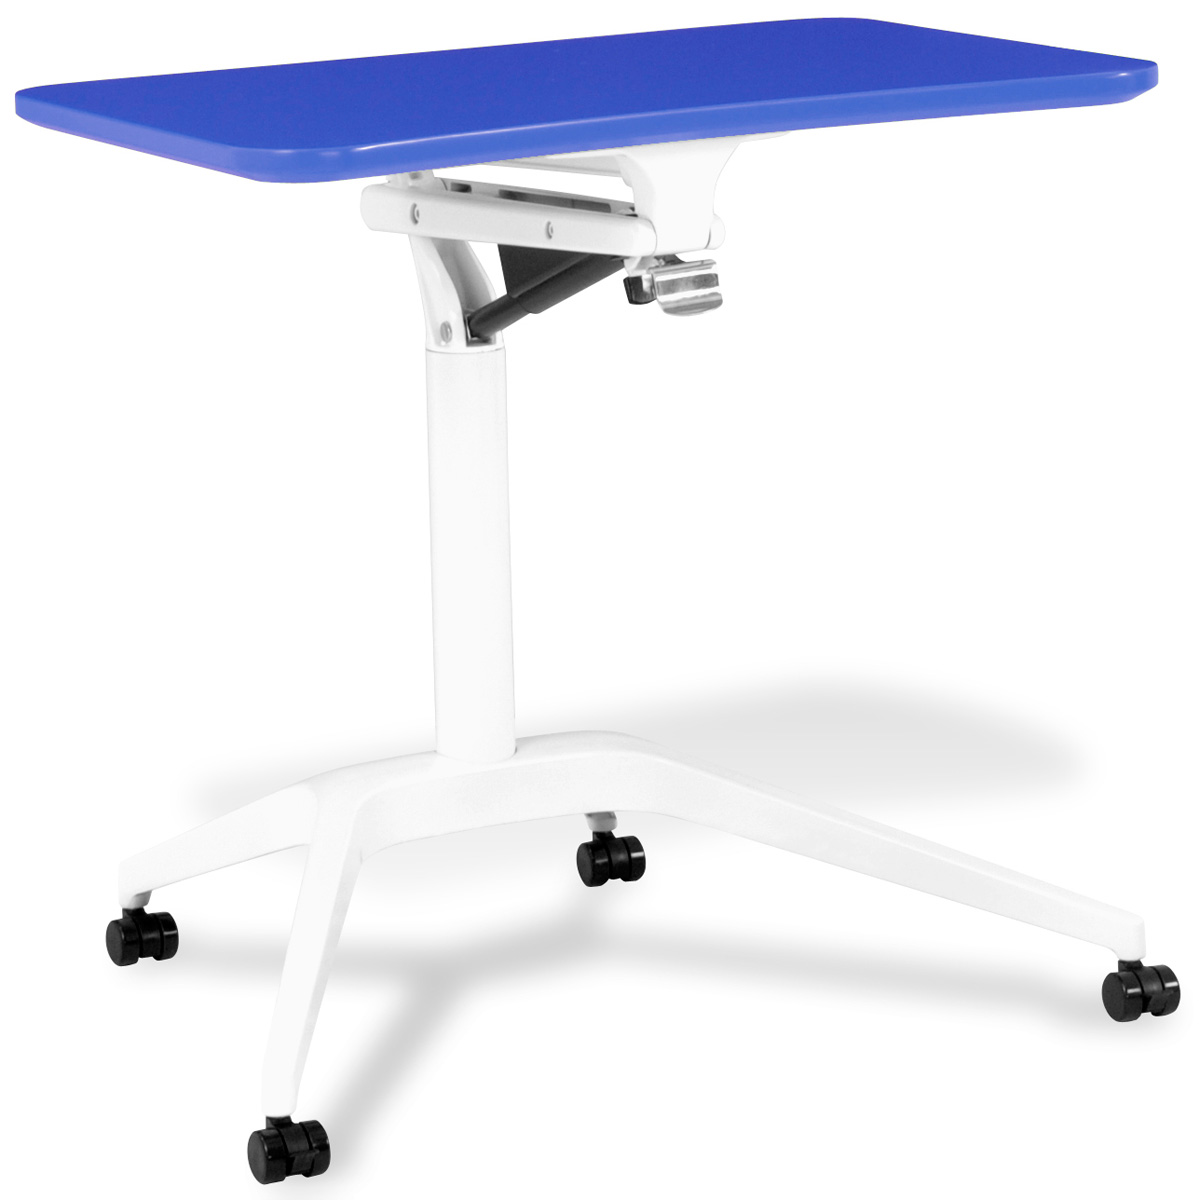 Mobile Laptop Table Adjule Height Blue Uniq X201